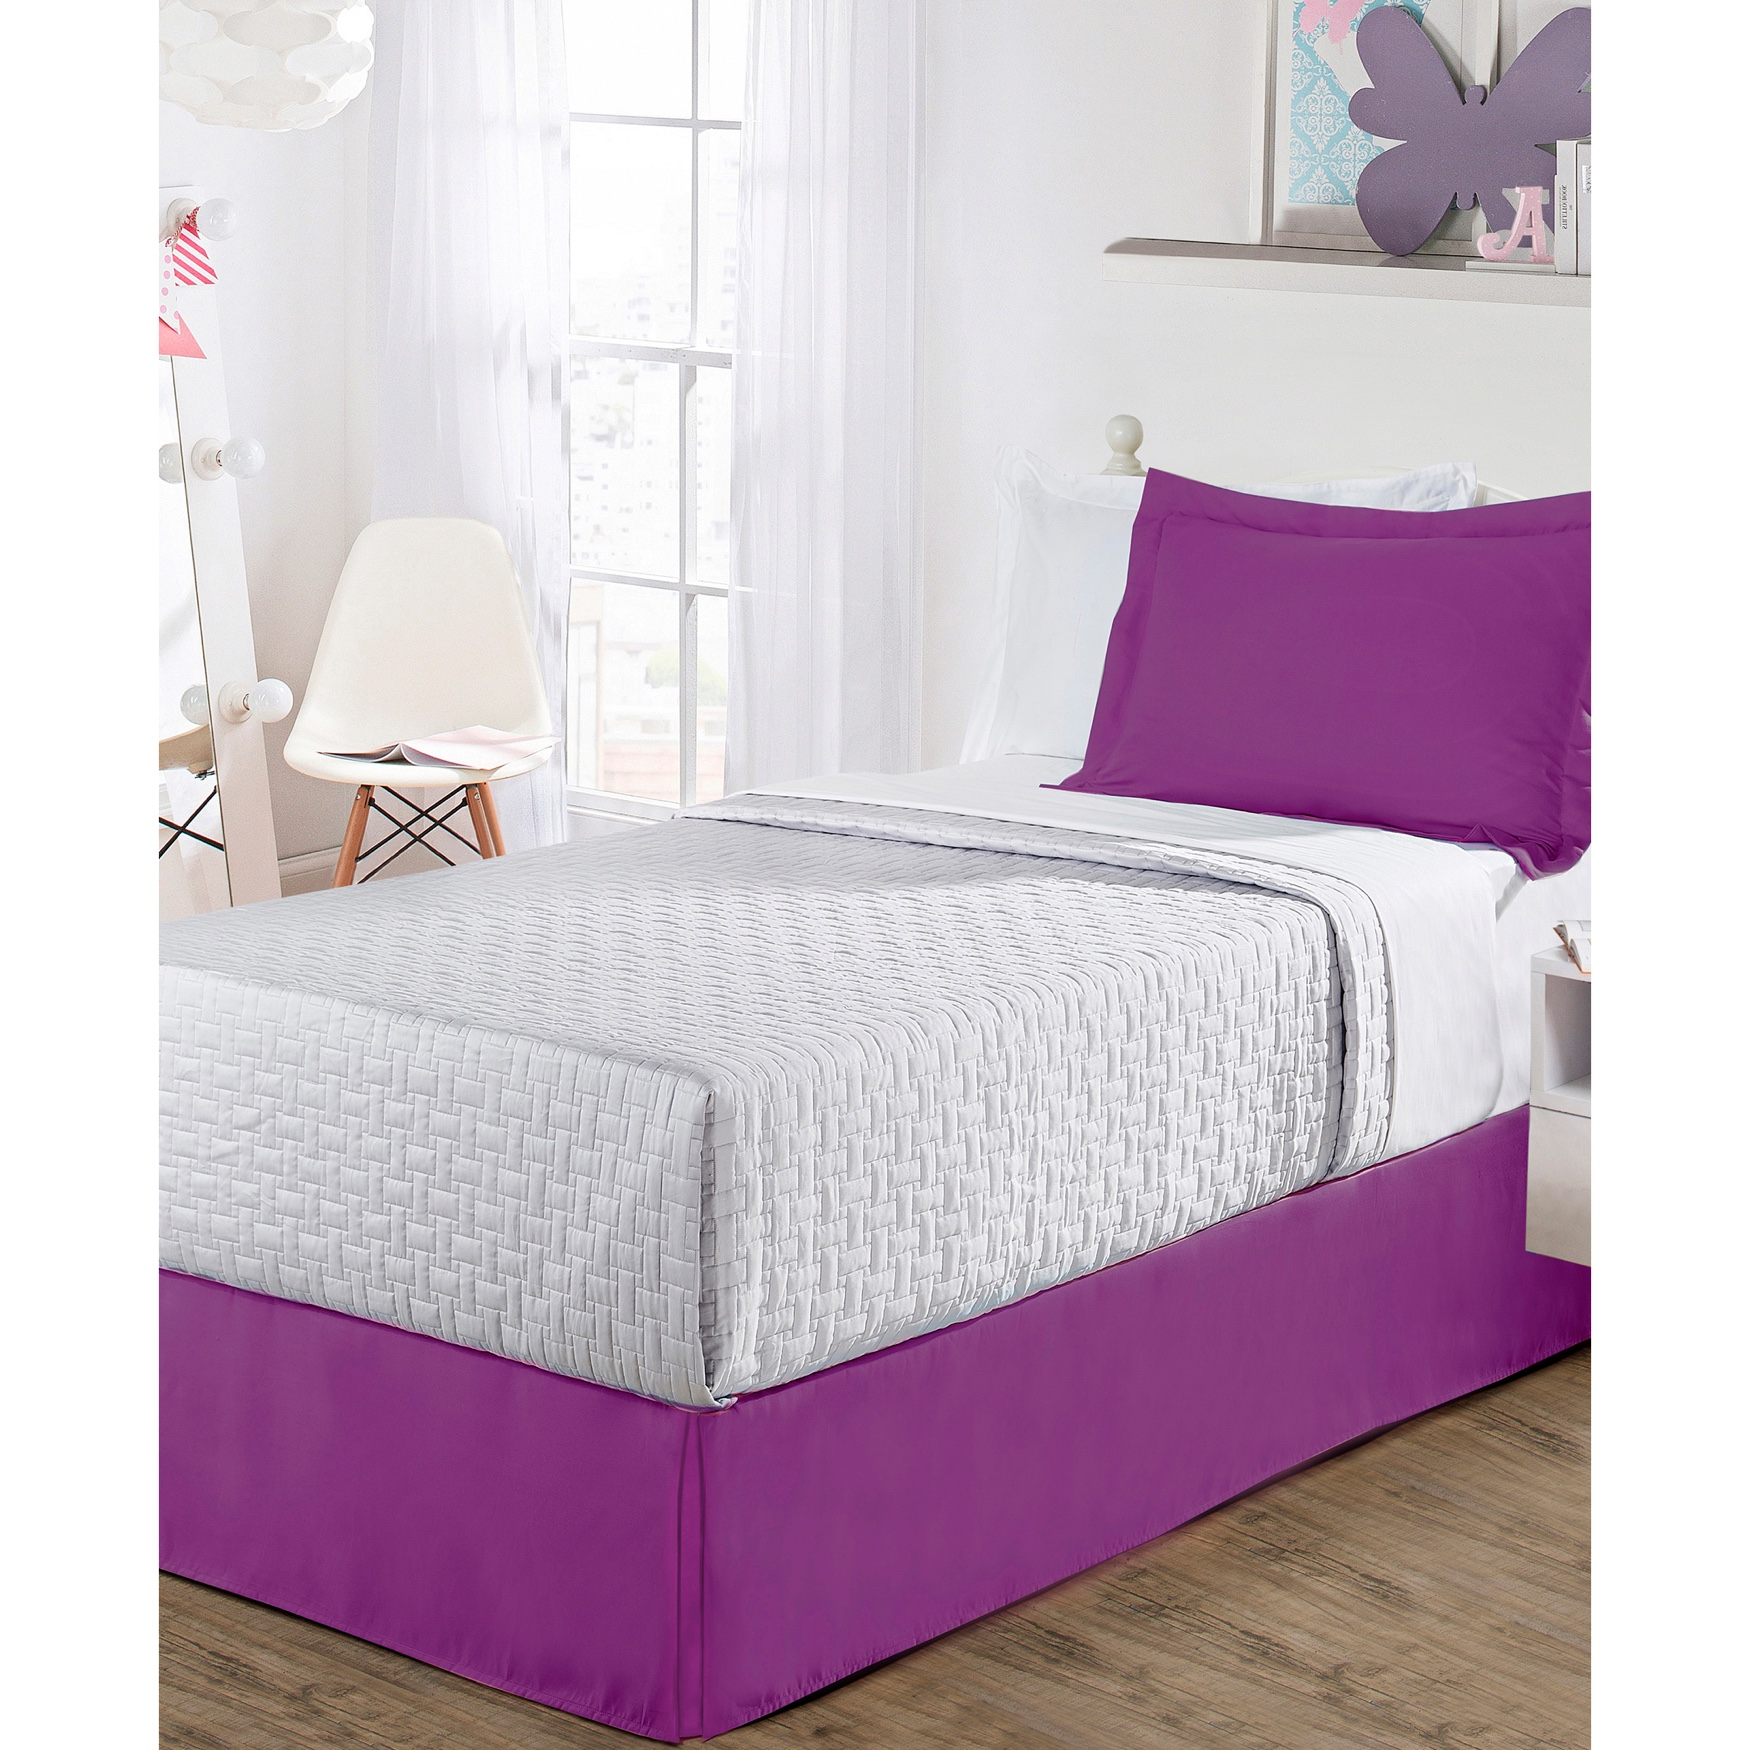 "Luxury Hotel Classic Tailored 14"" Drop Purple Bed Skirt,"